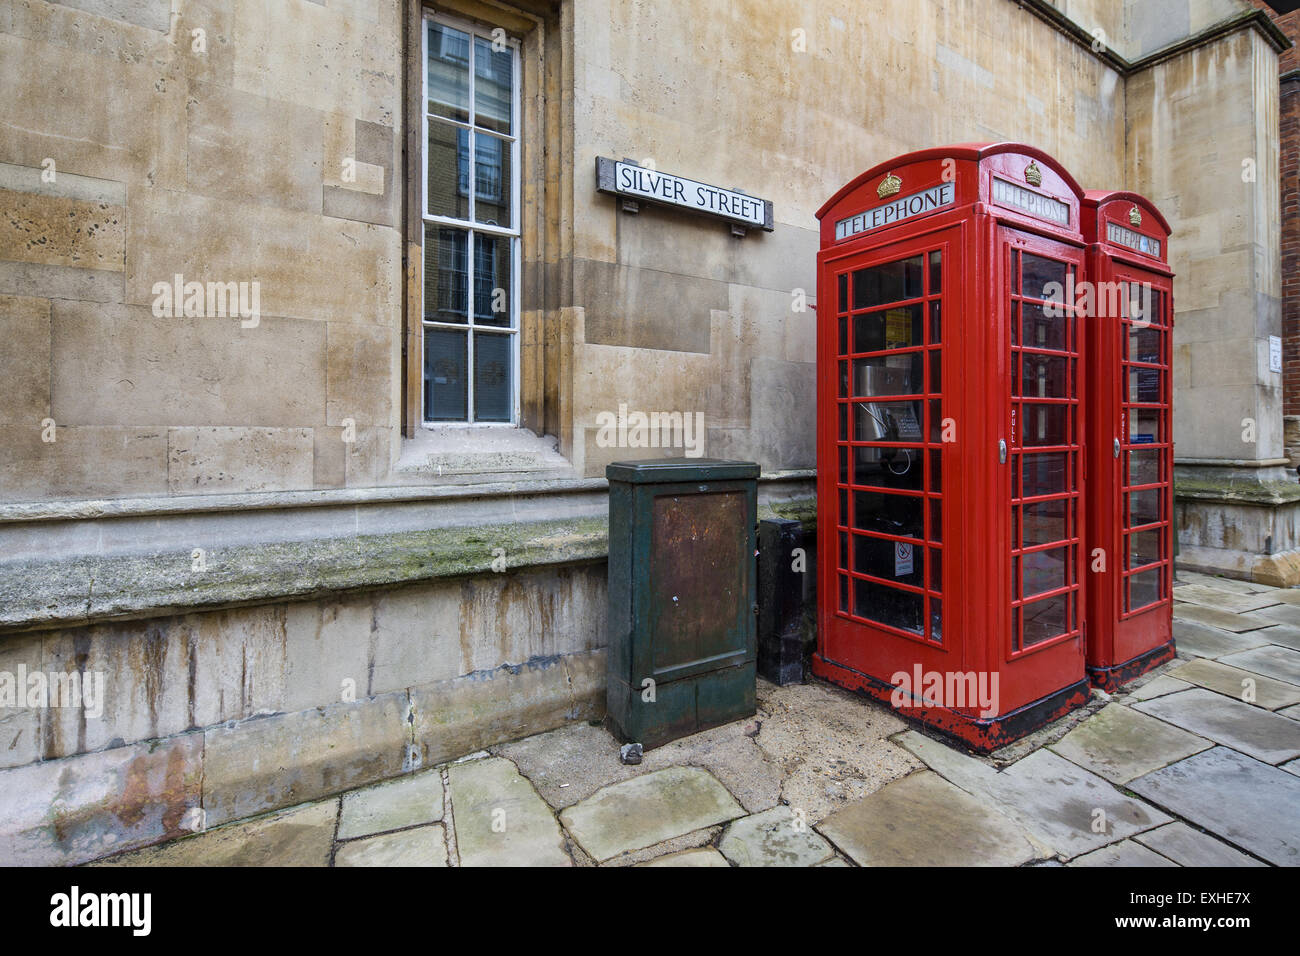 Two red telephone boxes in a street in England - Stock Image